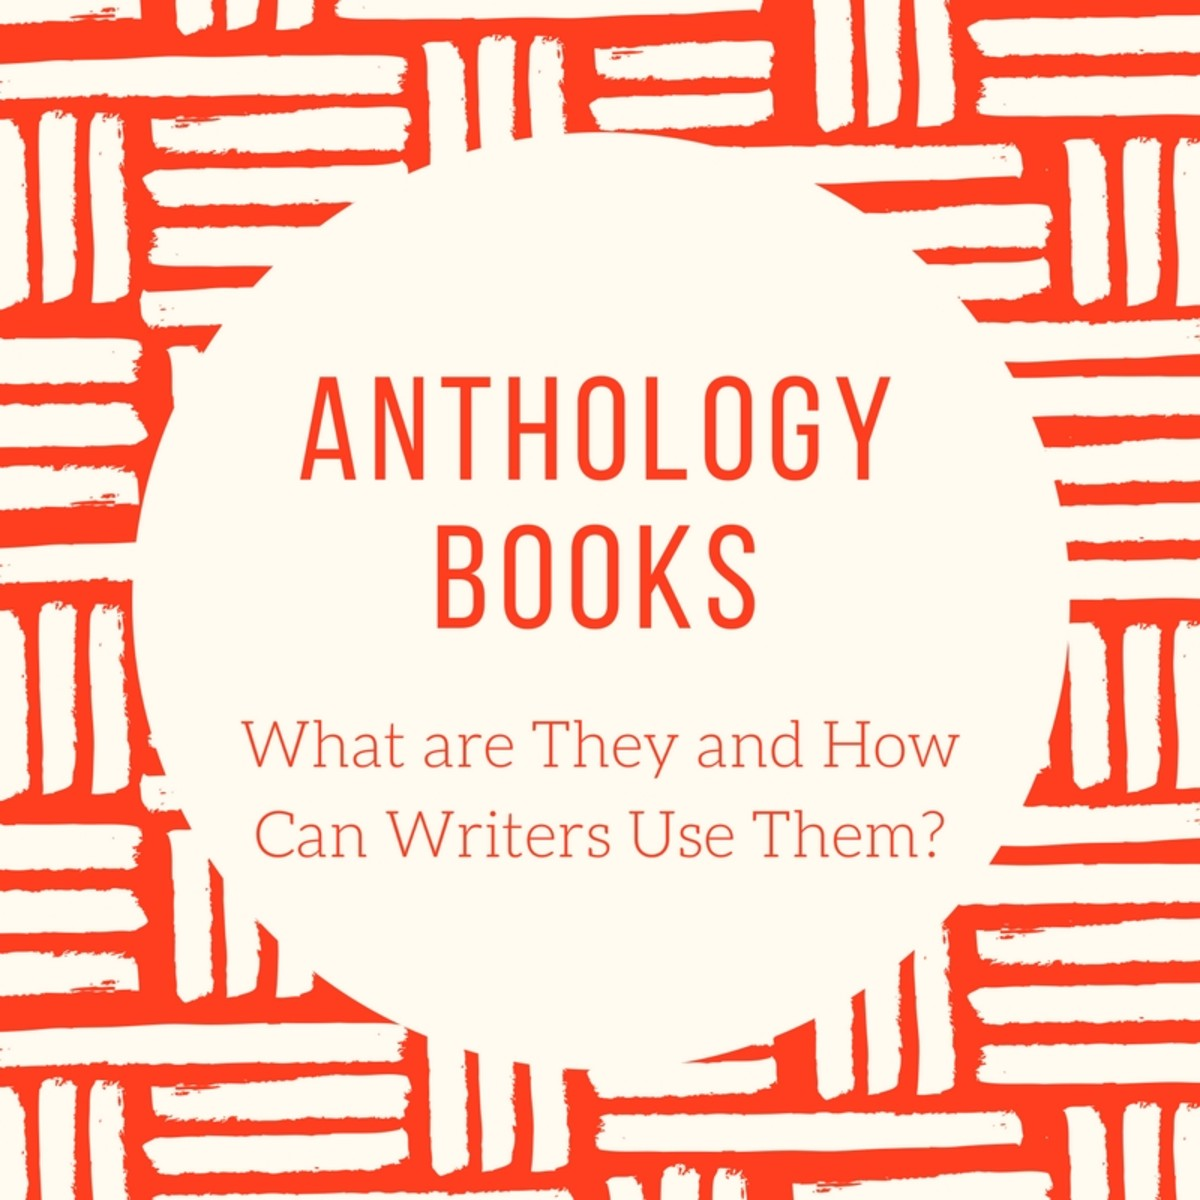 Anthology Books: What are They and How Can Writers Use Them?